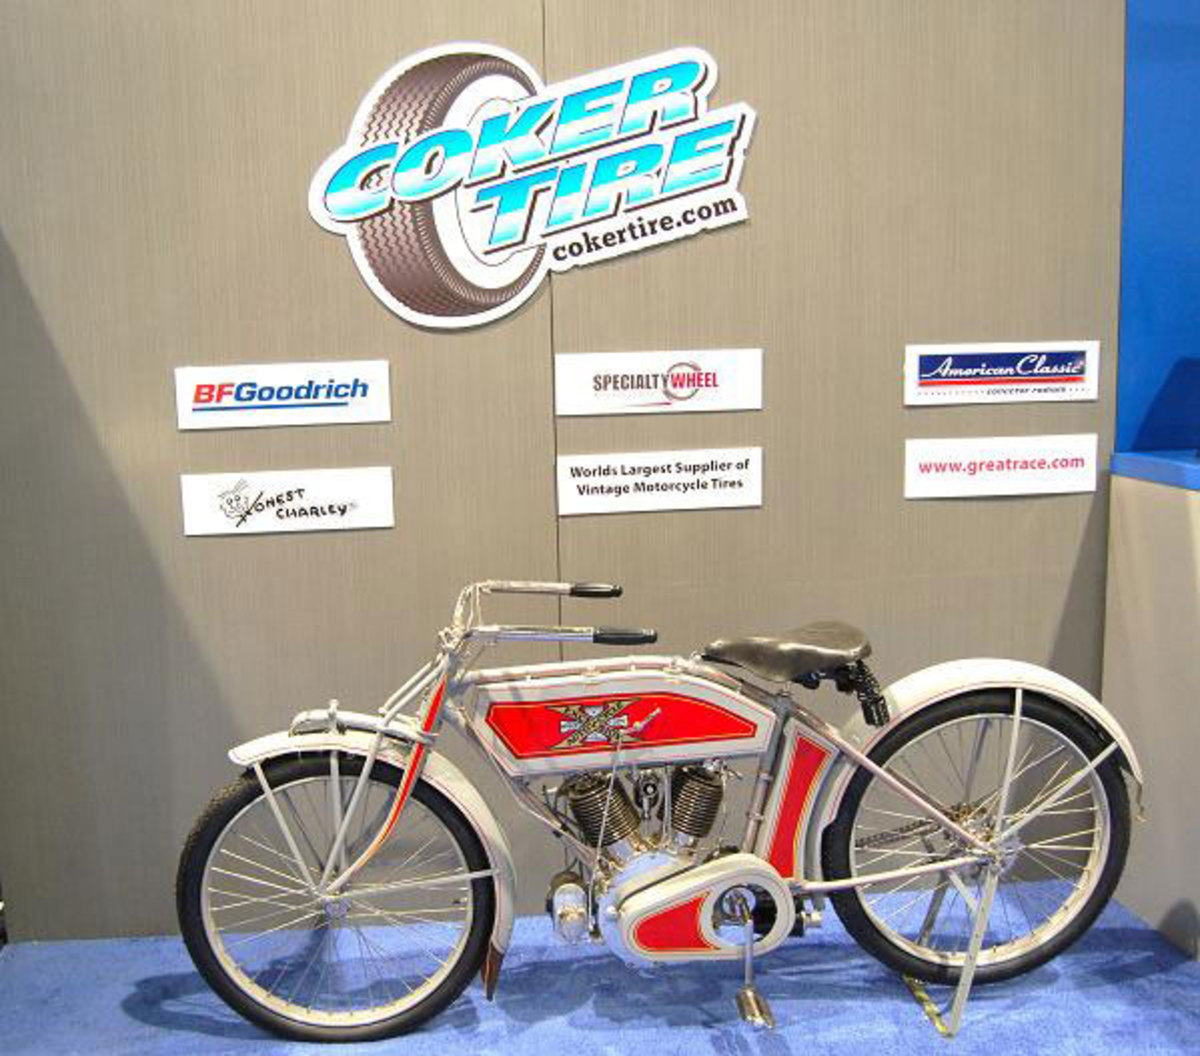 Coker is also a fancier of early bikes like this restored Henderson and makes tires for them, too.